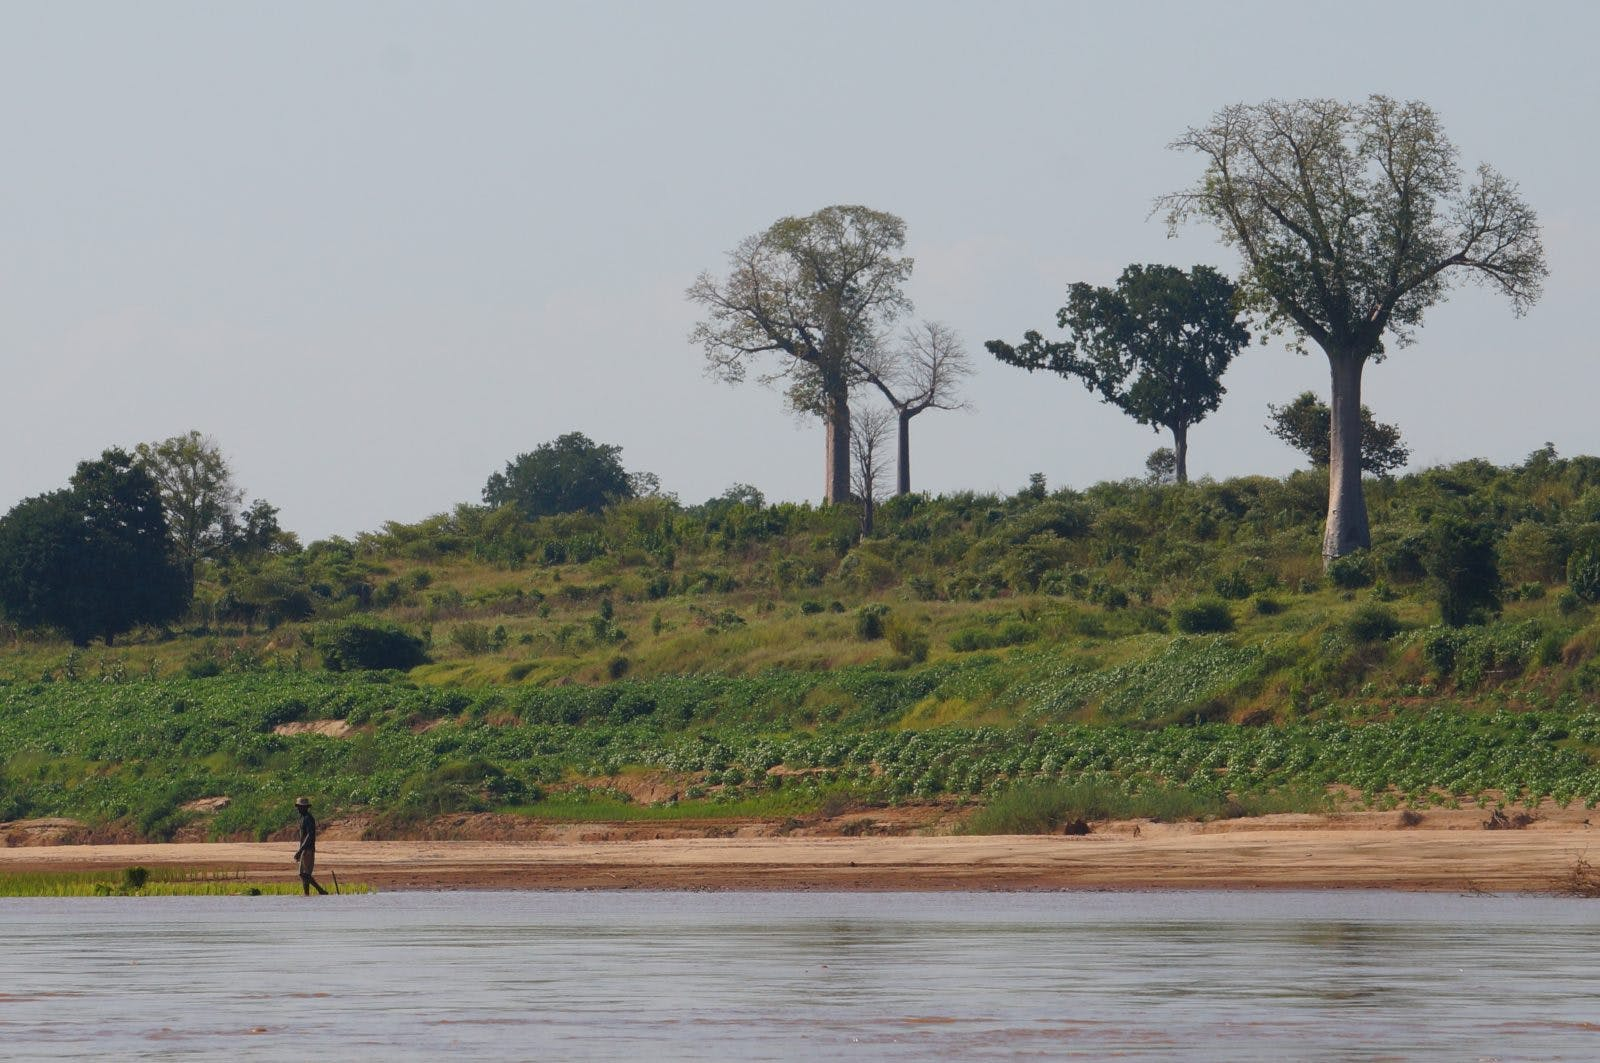 On the third day we saw our first Baobab trees. We also started to encounter more farmers planting on the river banks meaning we had to work harder to find campsites that wouldn't interfere with peoples daily life.